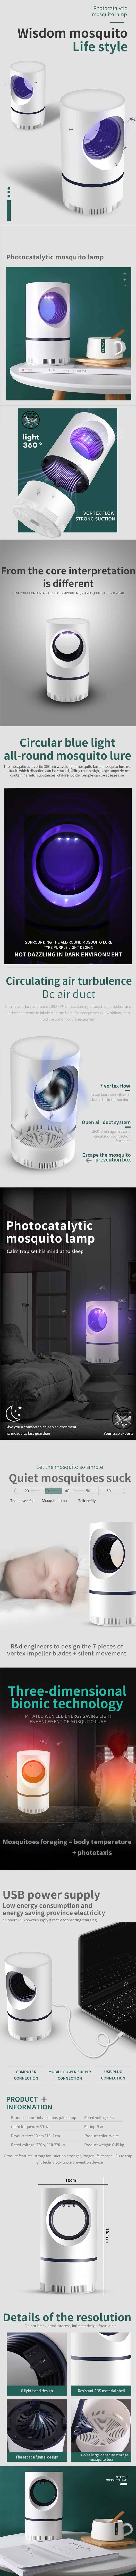 Mosquito Lamp - Kook Central